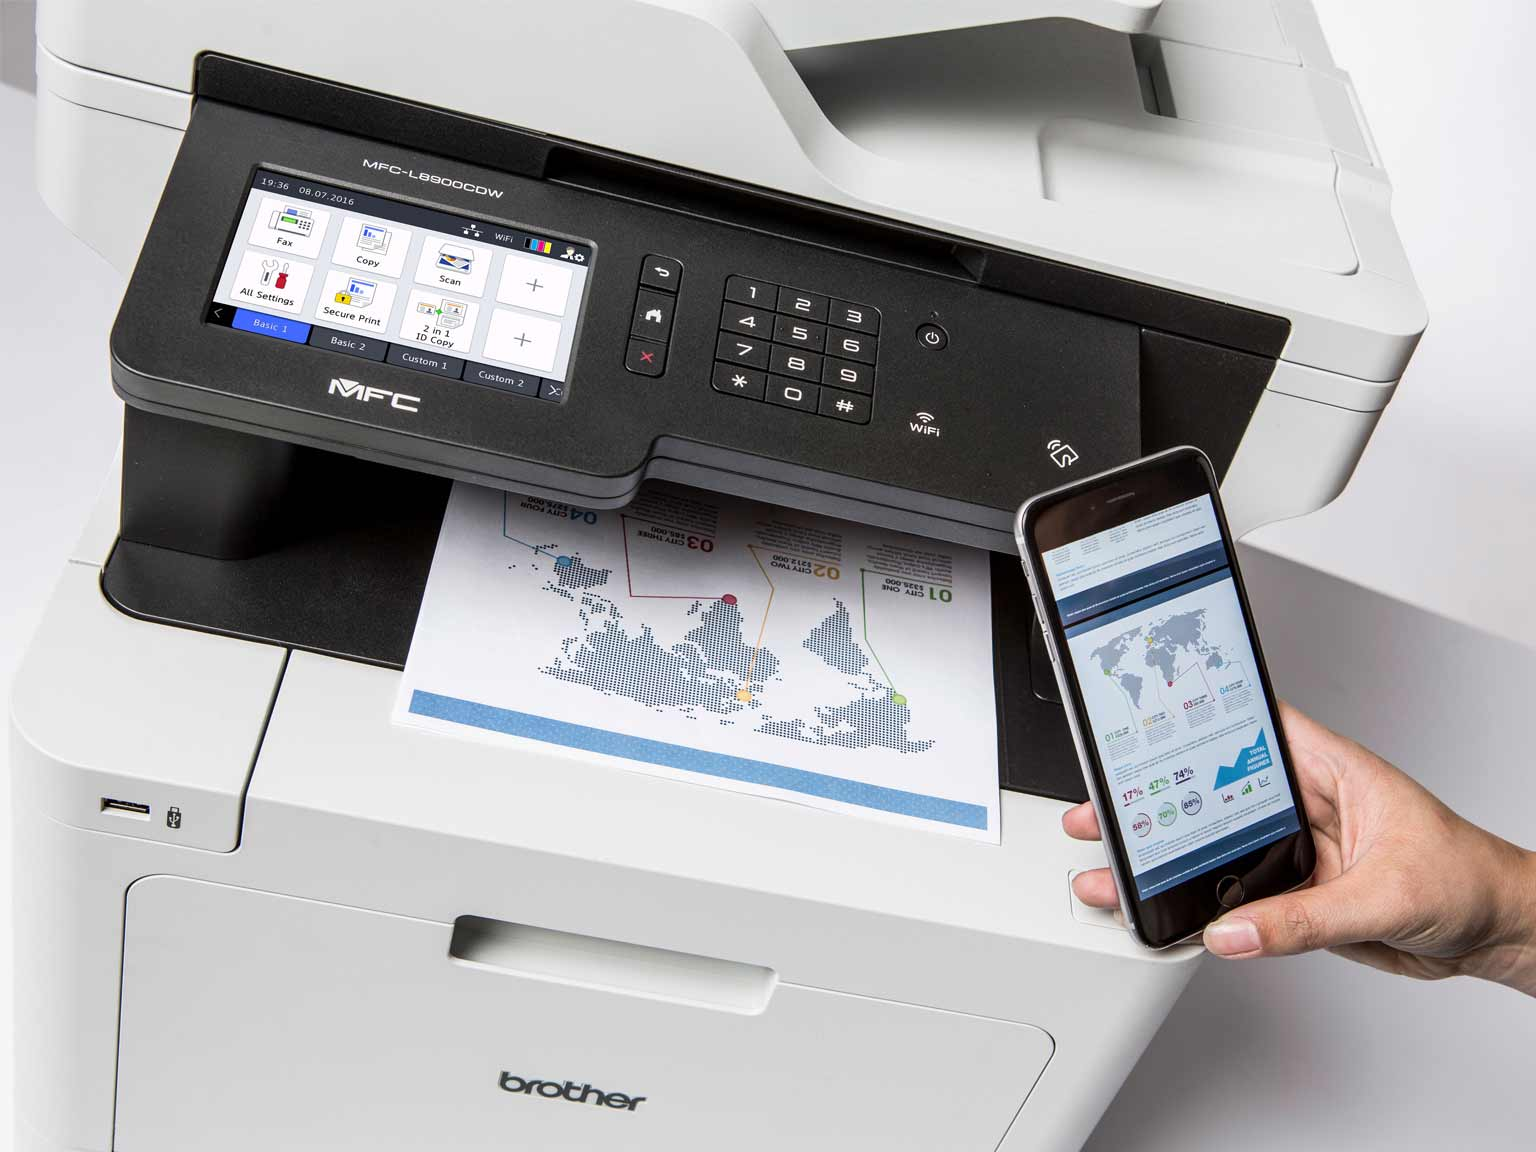 Printing on an MFC-L8900CDW from a smart phone